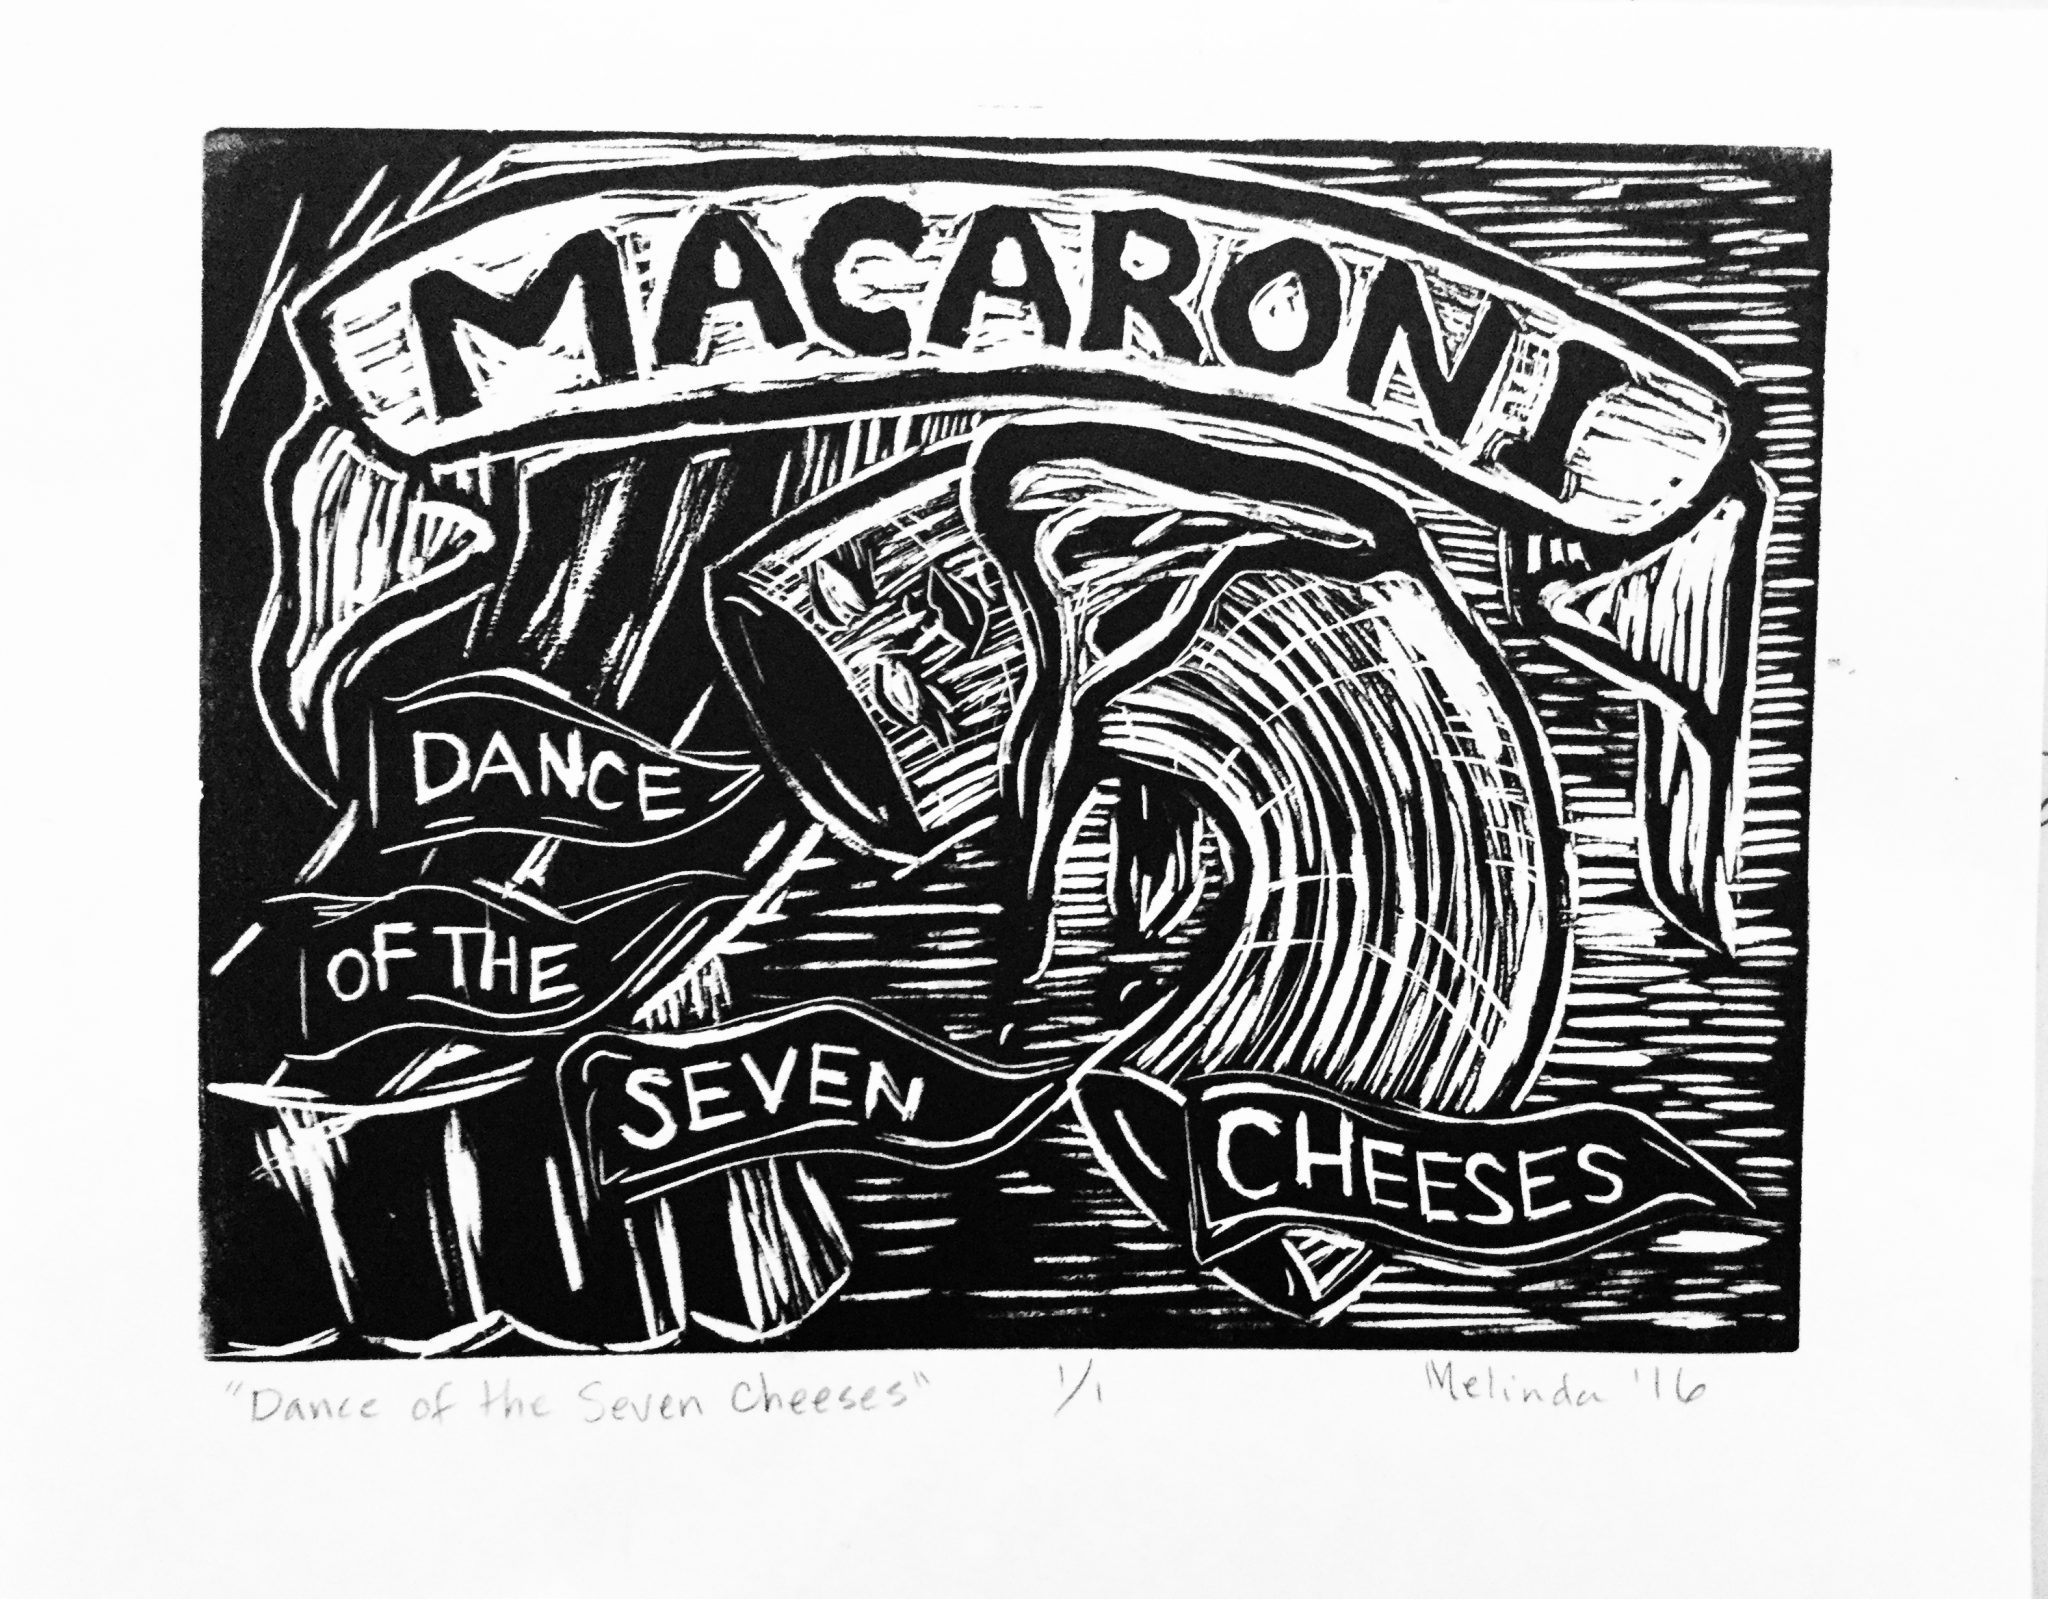 Macaroni: dance of the seven cheeses